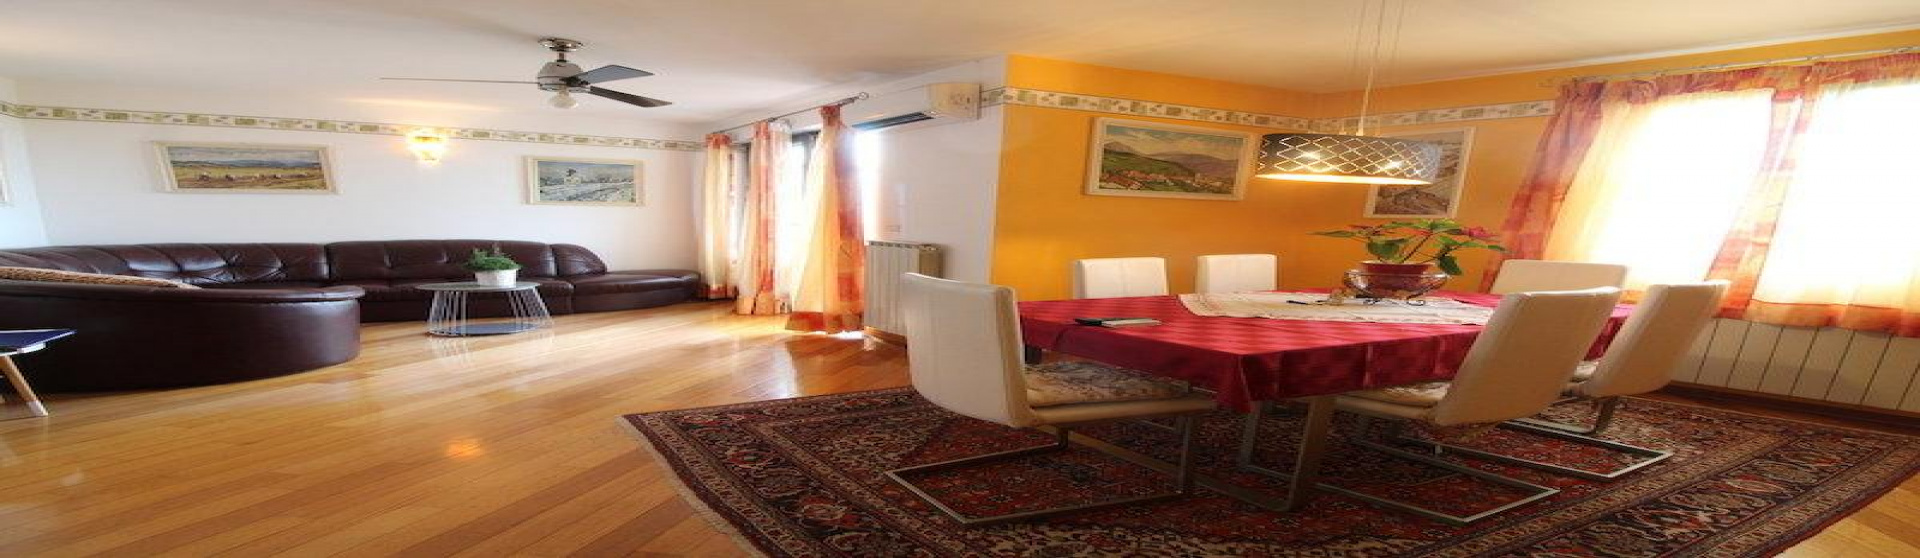 Koper, Mestna Obcina Koper, 5 Bedrooms Bedrooms, ,Apartment,For Sale,Koper,18766